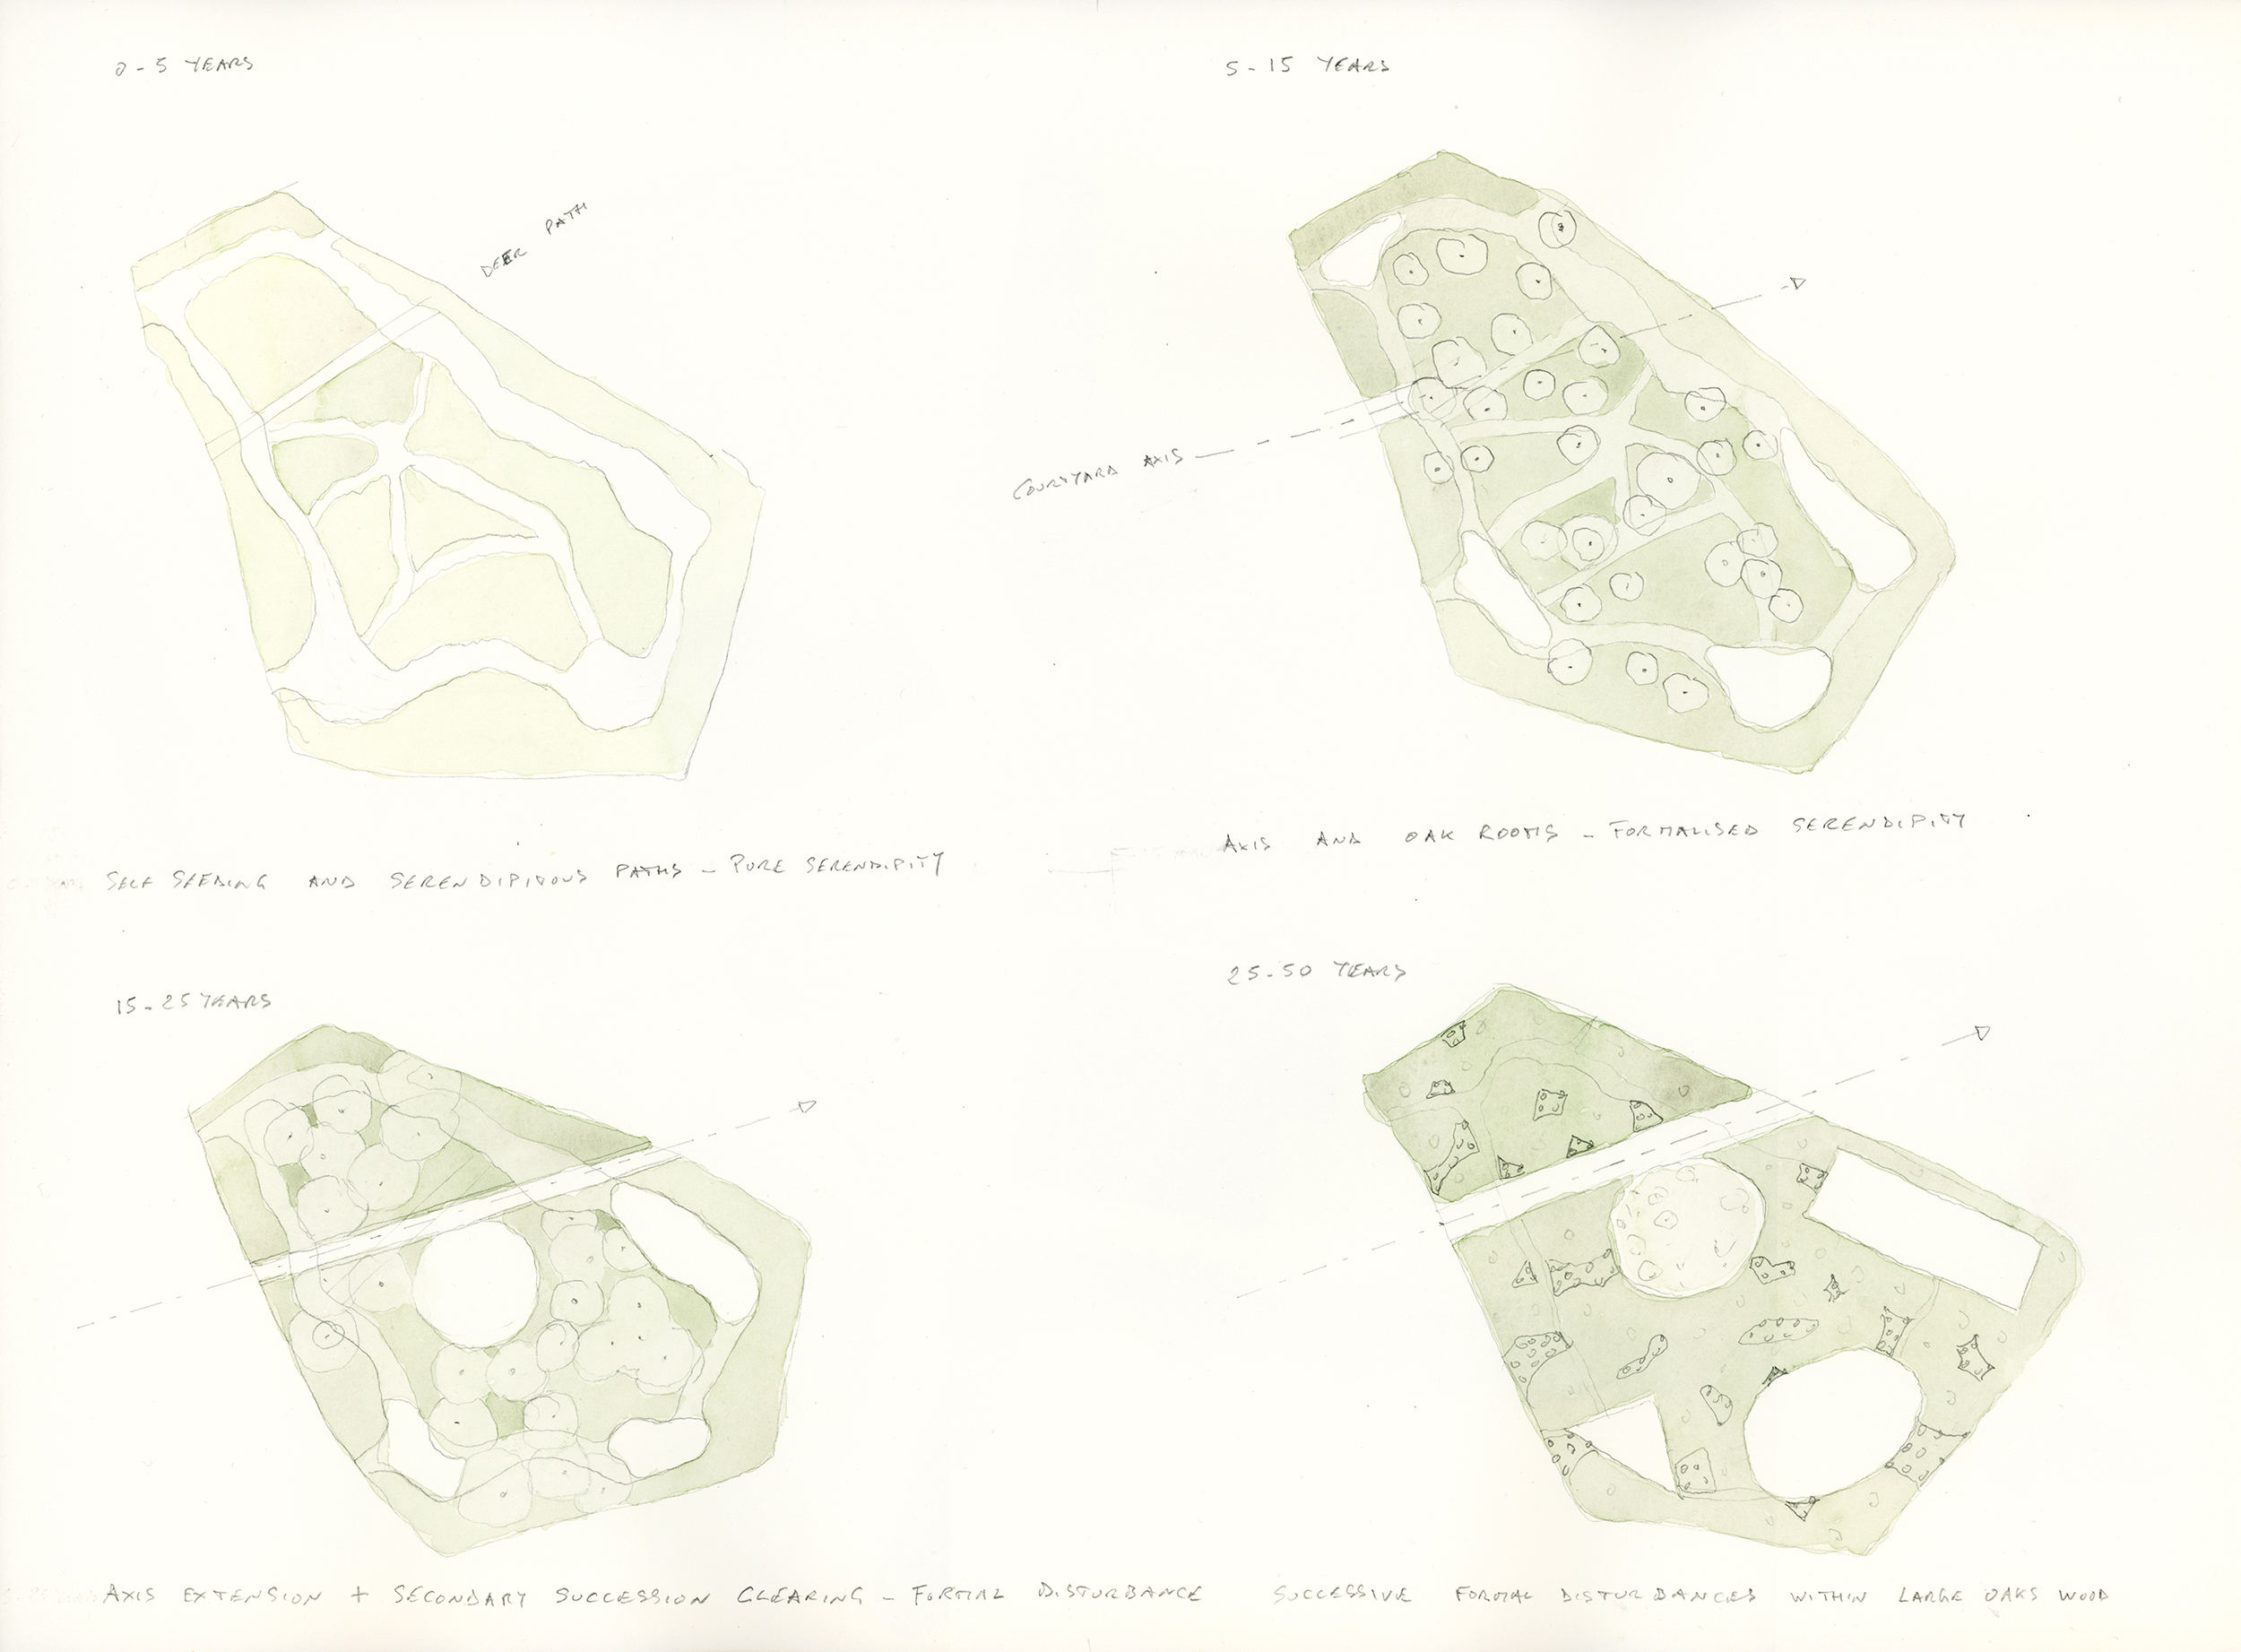 The successional plans of the Oak Rooms wood: top left are the first five years of improvised paths; top right is the current situation of Oak Rooms; bottom left, the next planned stage of a first circular clearing and cut axis; to its right is the envisioned next stage of added clearings which are then left to regenerate and disappear until another is created.